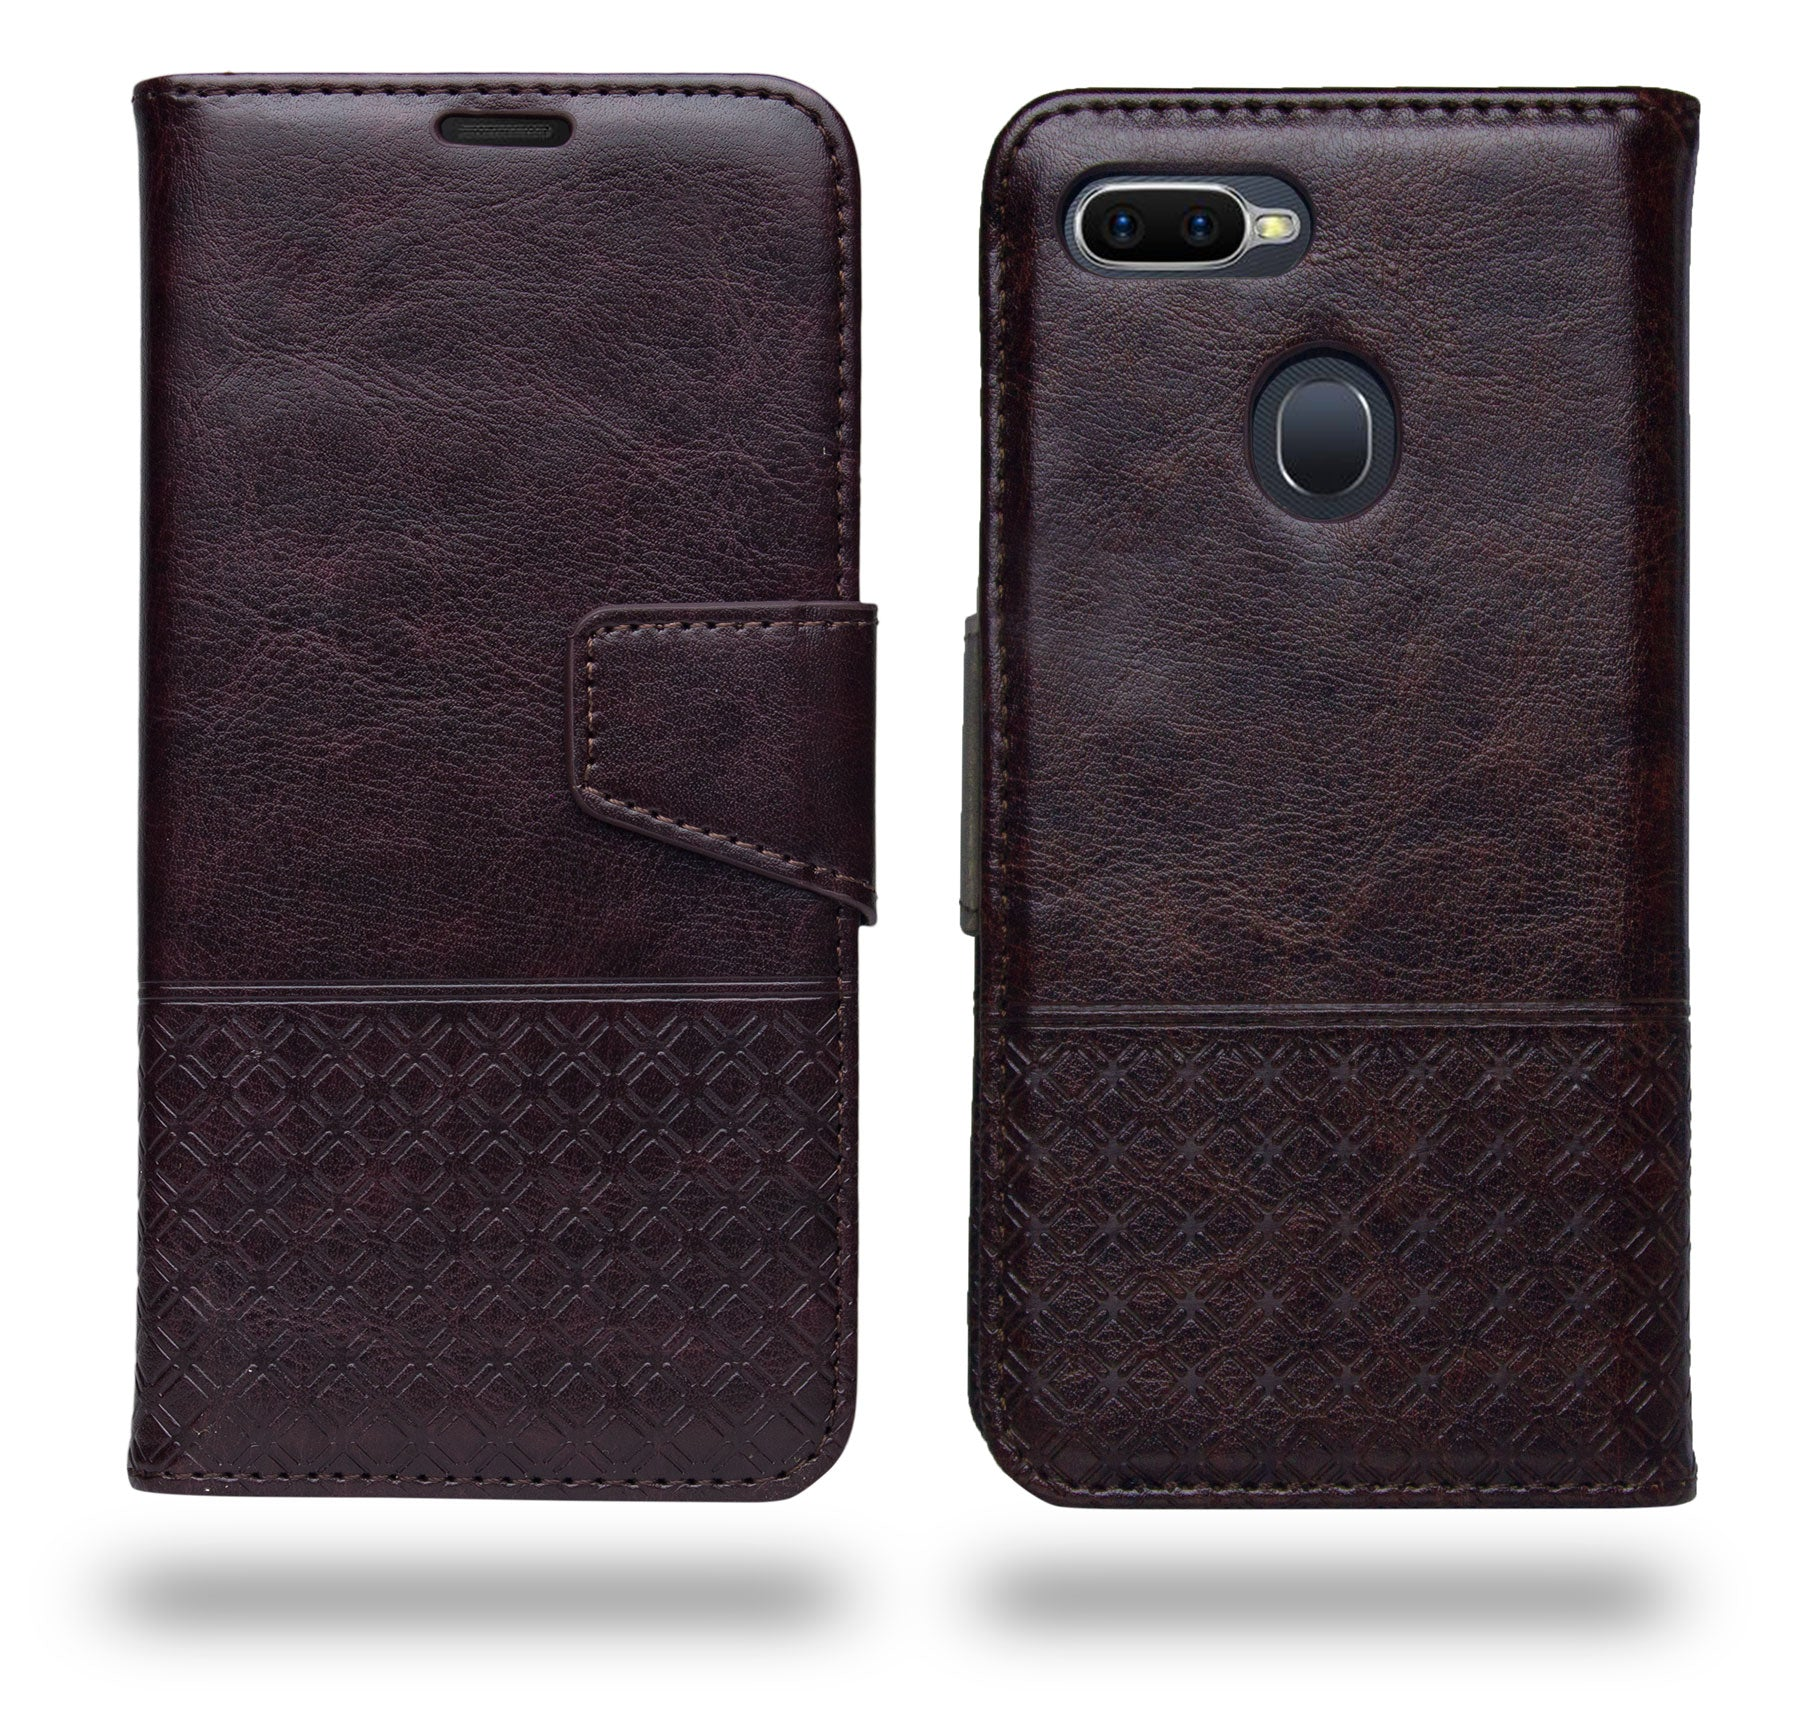 Ceego Luxuria Compact Wallet Flip Cover for Realme 2 Pro (Chestnut Brown)